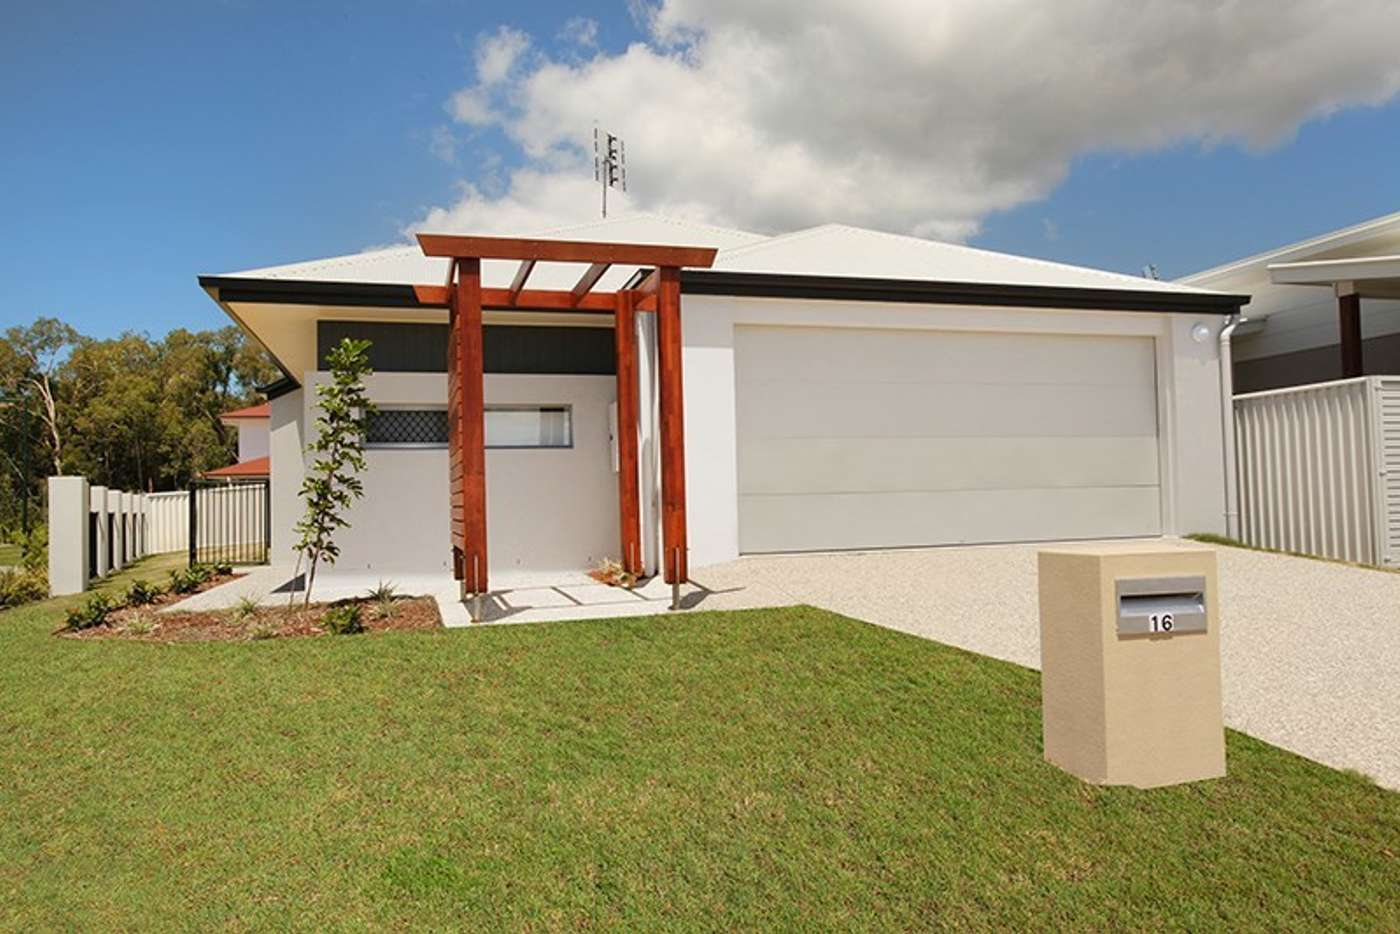 Main view of Homely house listing, 16 Burdekin Place, Pelican Waters QLD 4551